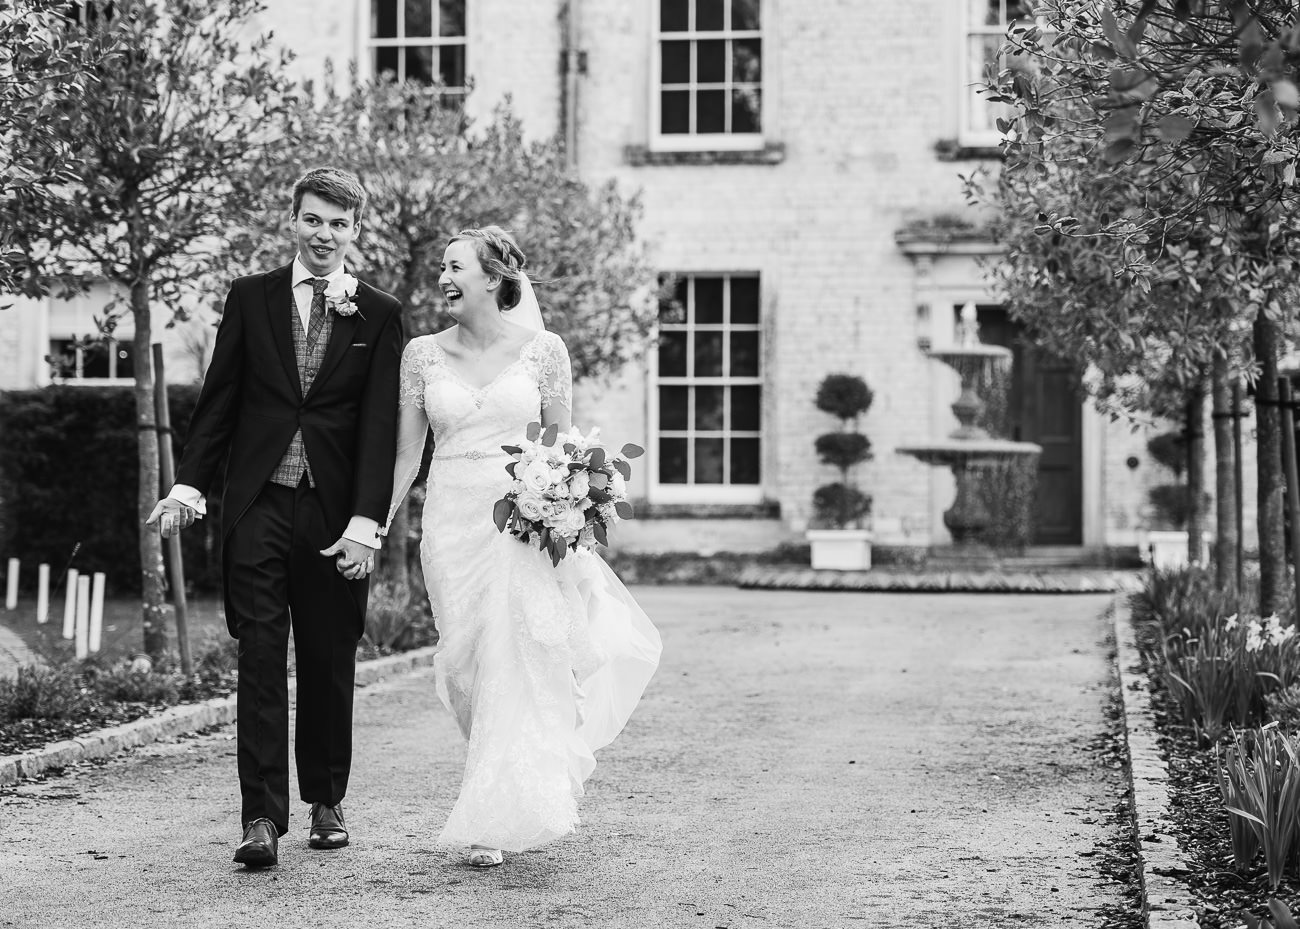 Black and White wedding photography Bride and Groom casual portrait